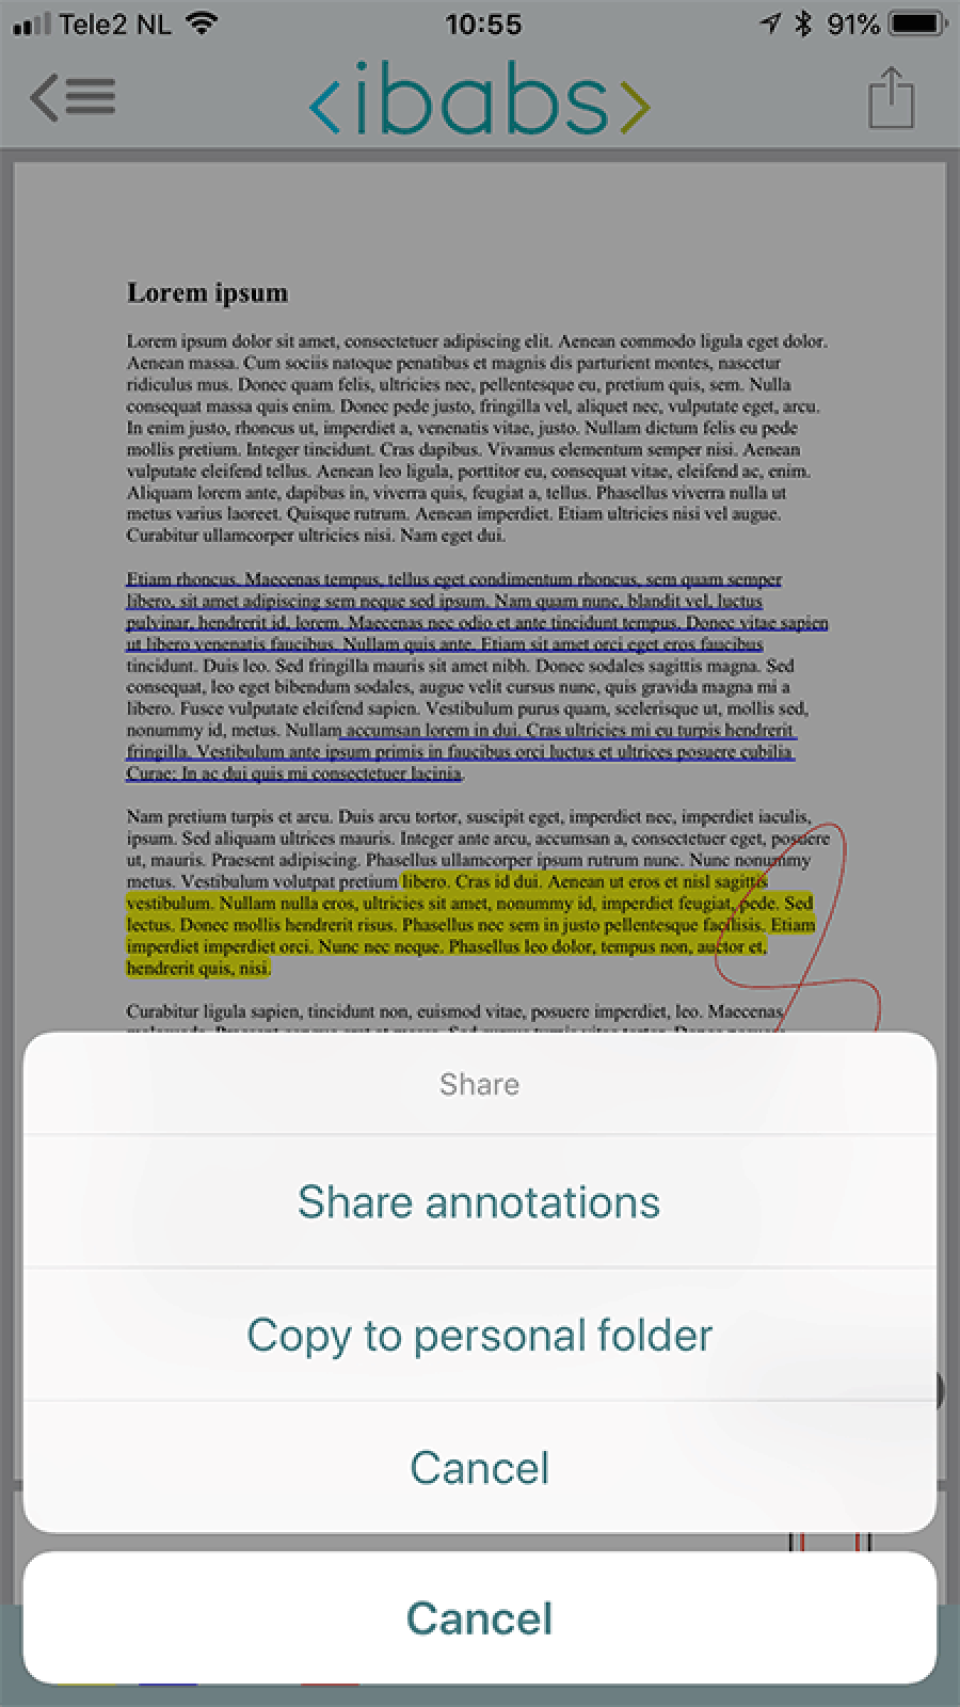 iBabs allows users to annotate meeting documents